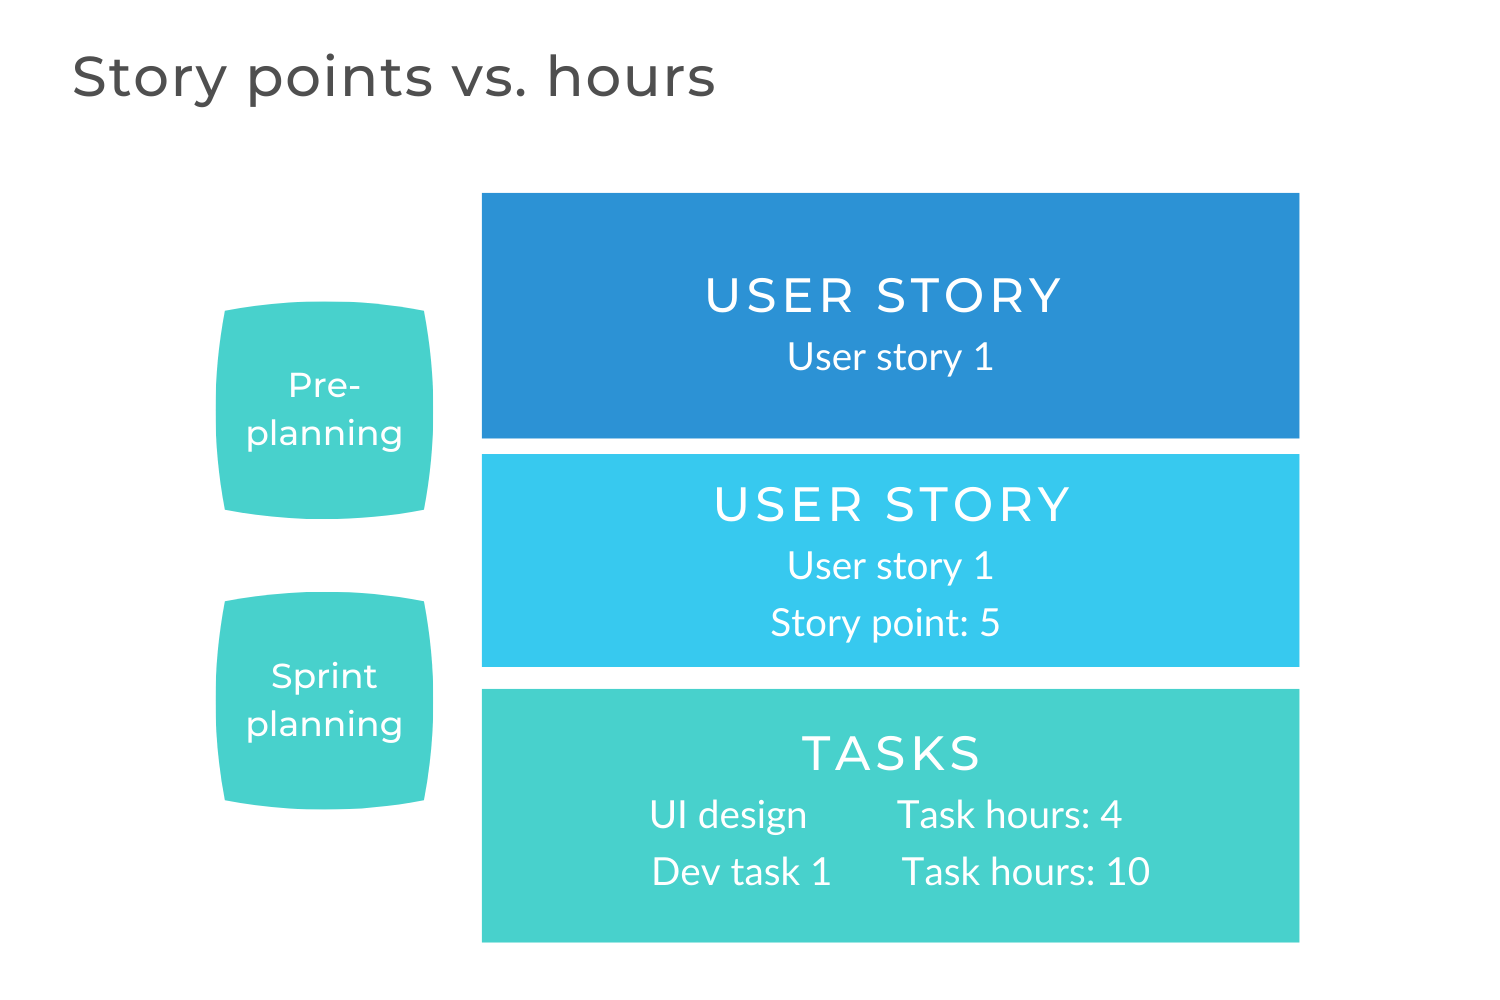 Story points vs. hours